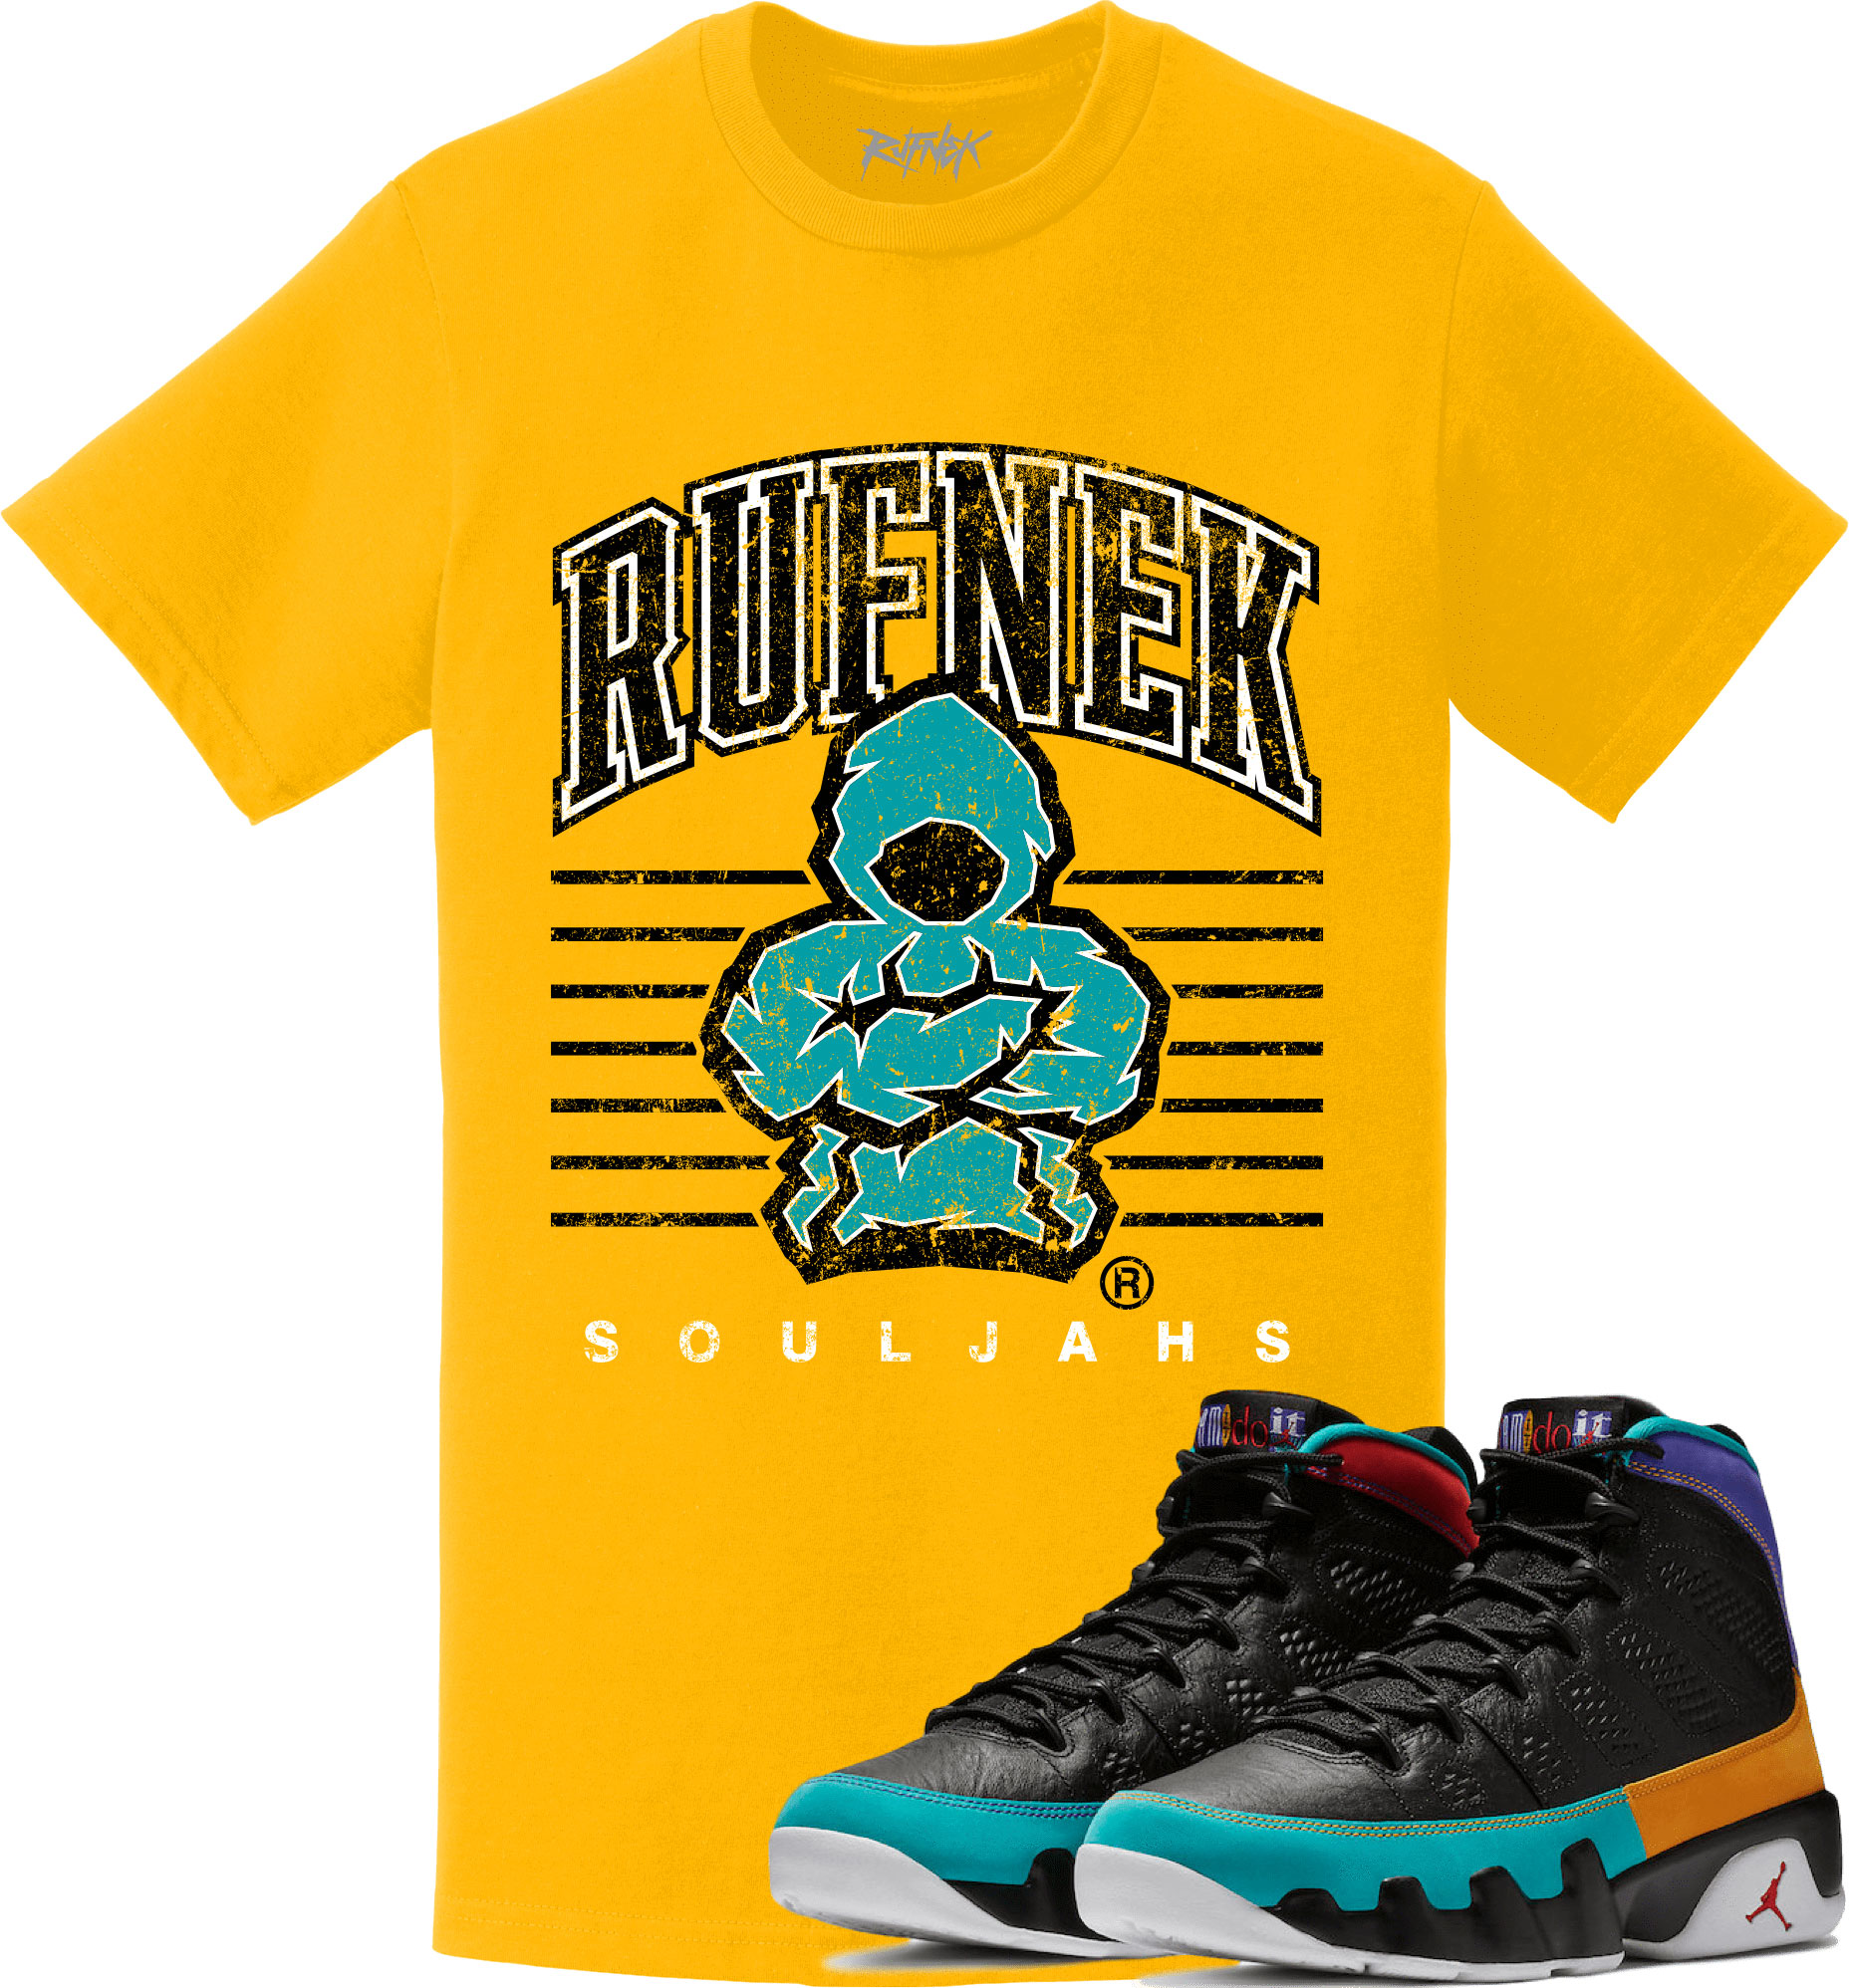 jordan-9-dream-it-do-it-sneaker-match-tee-shirt-2